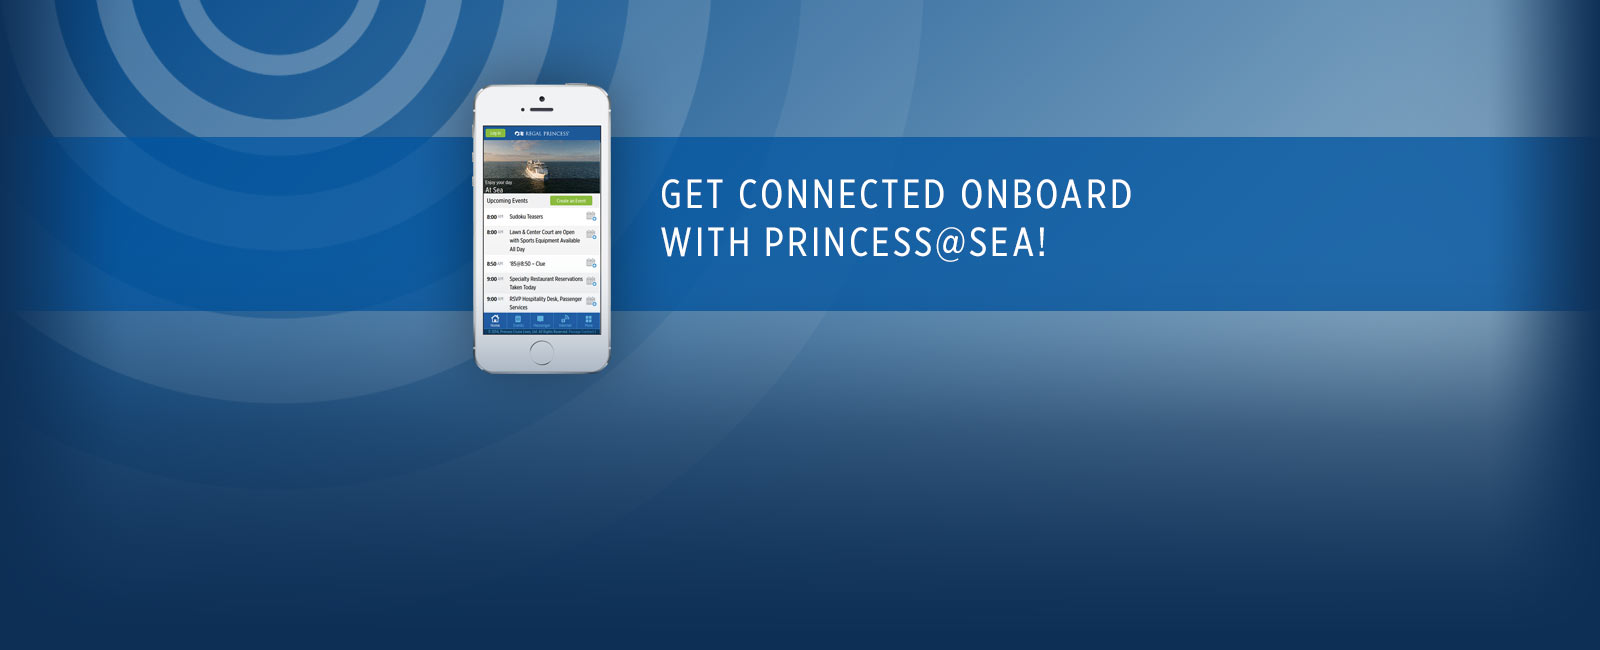 Get connected onboard with Princess@Sea! iPhone showing Princess Patter with days activities